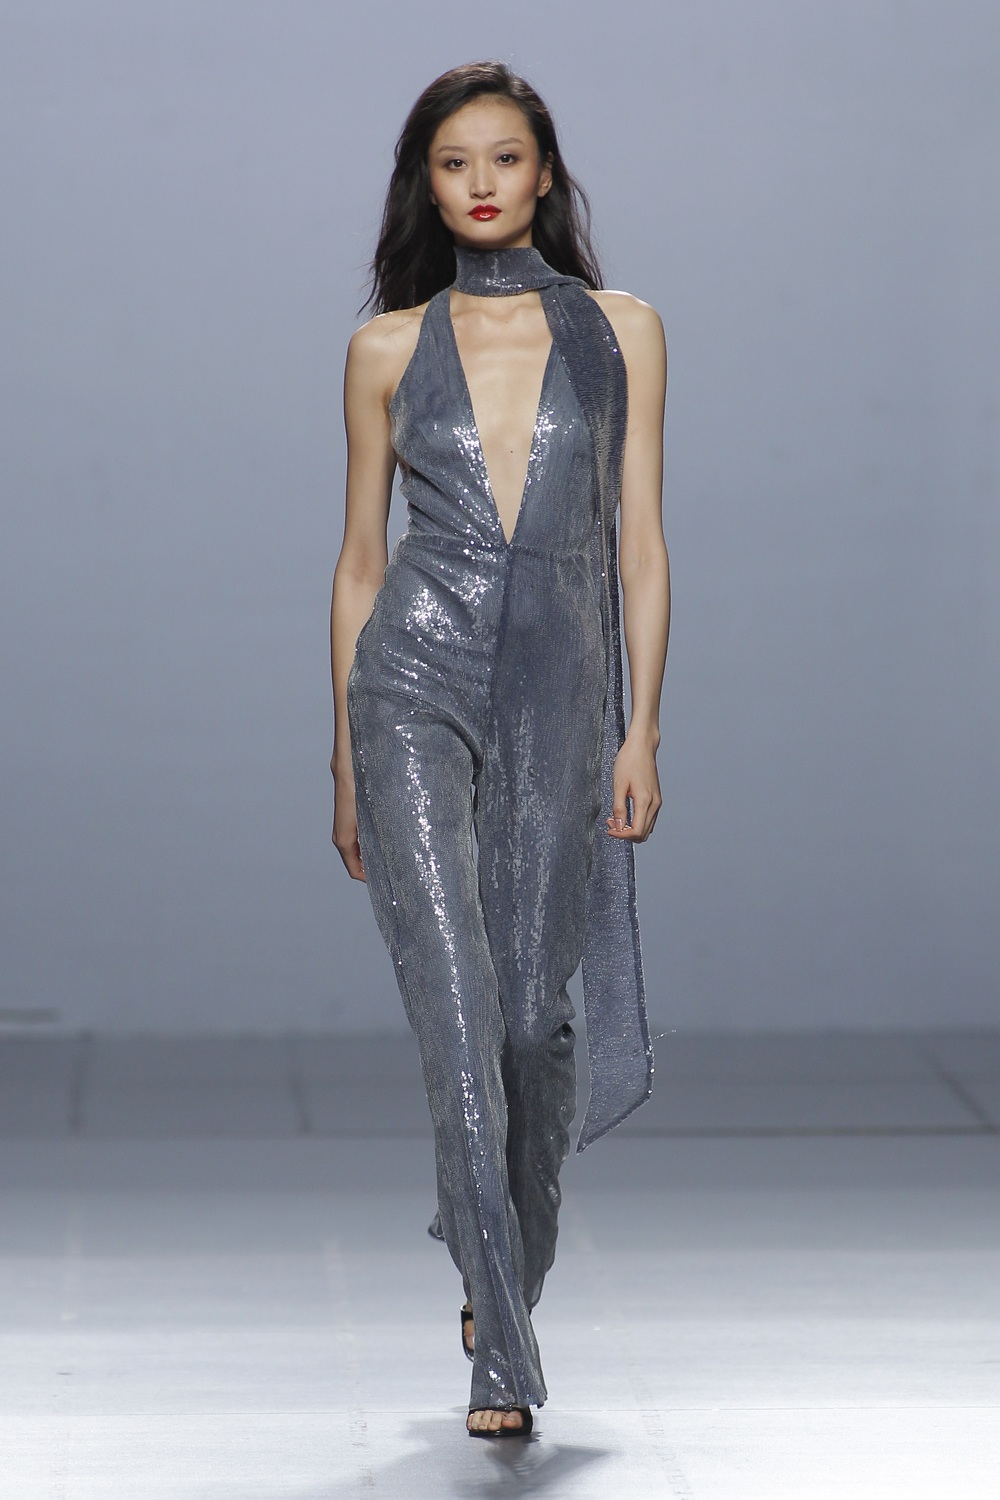 Glittering jumpsuit - The 2nd Skin Co.